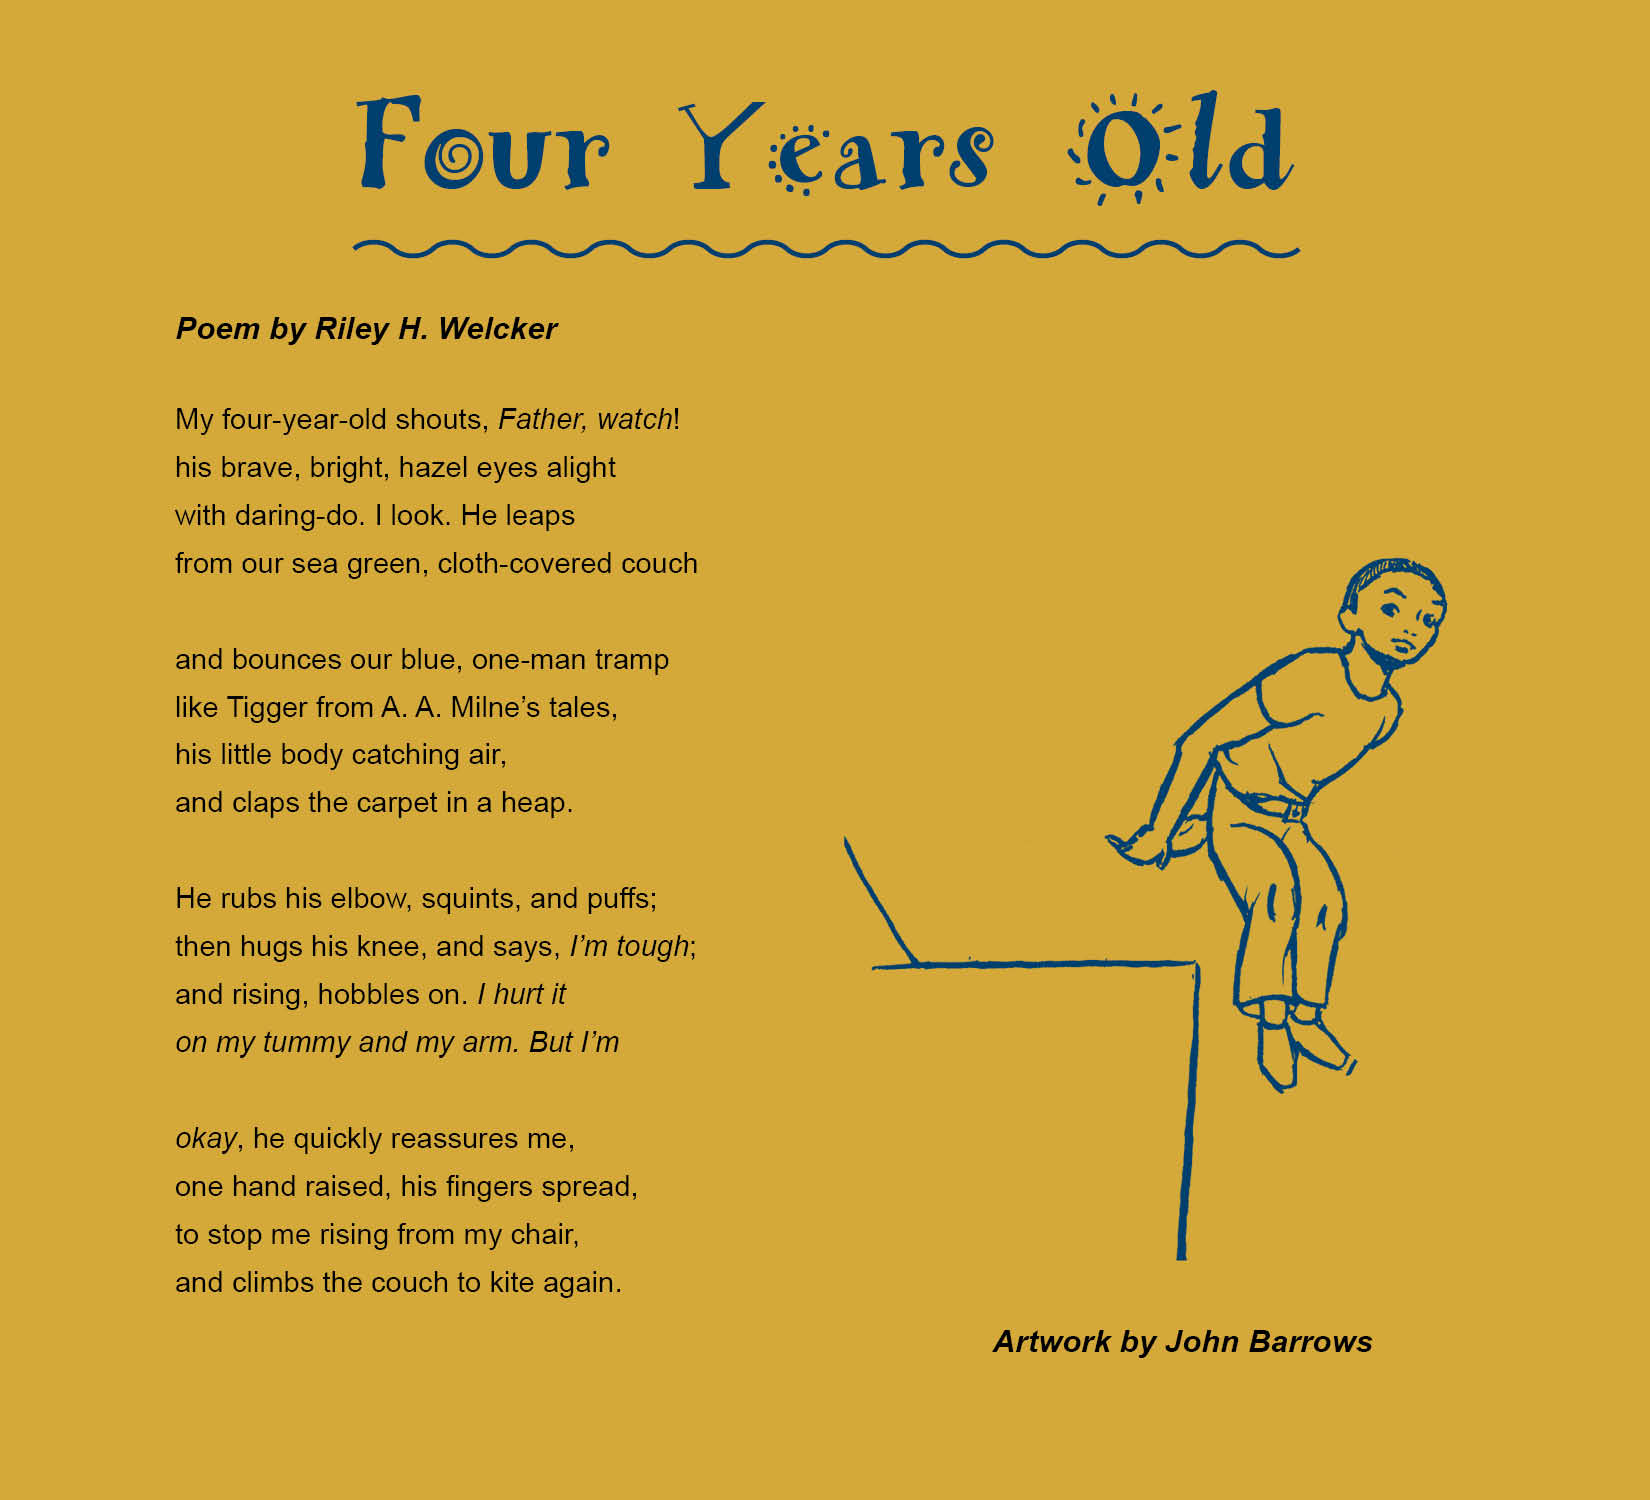 four years old poem by riley h welcker artwork by john barrows riley h welcker has many stories essays and poems bulging from his briefcase he hold a b s in business a b a in english and is currently a graduate